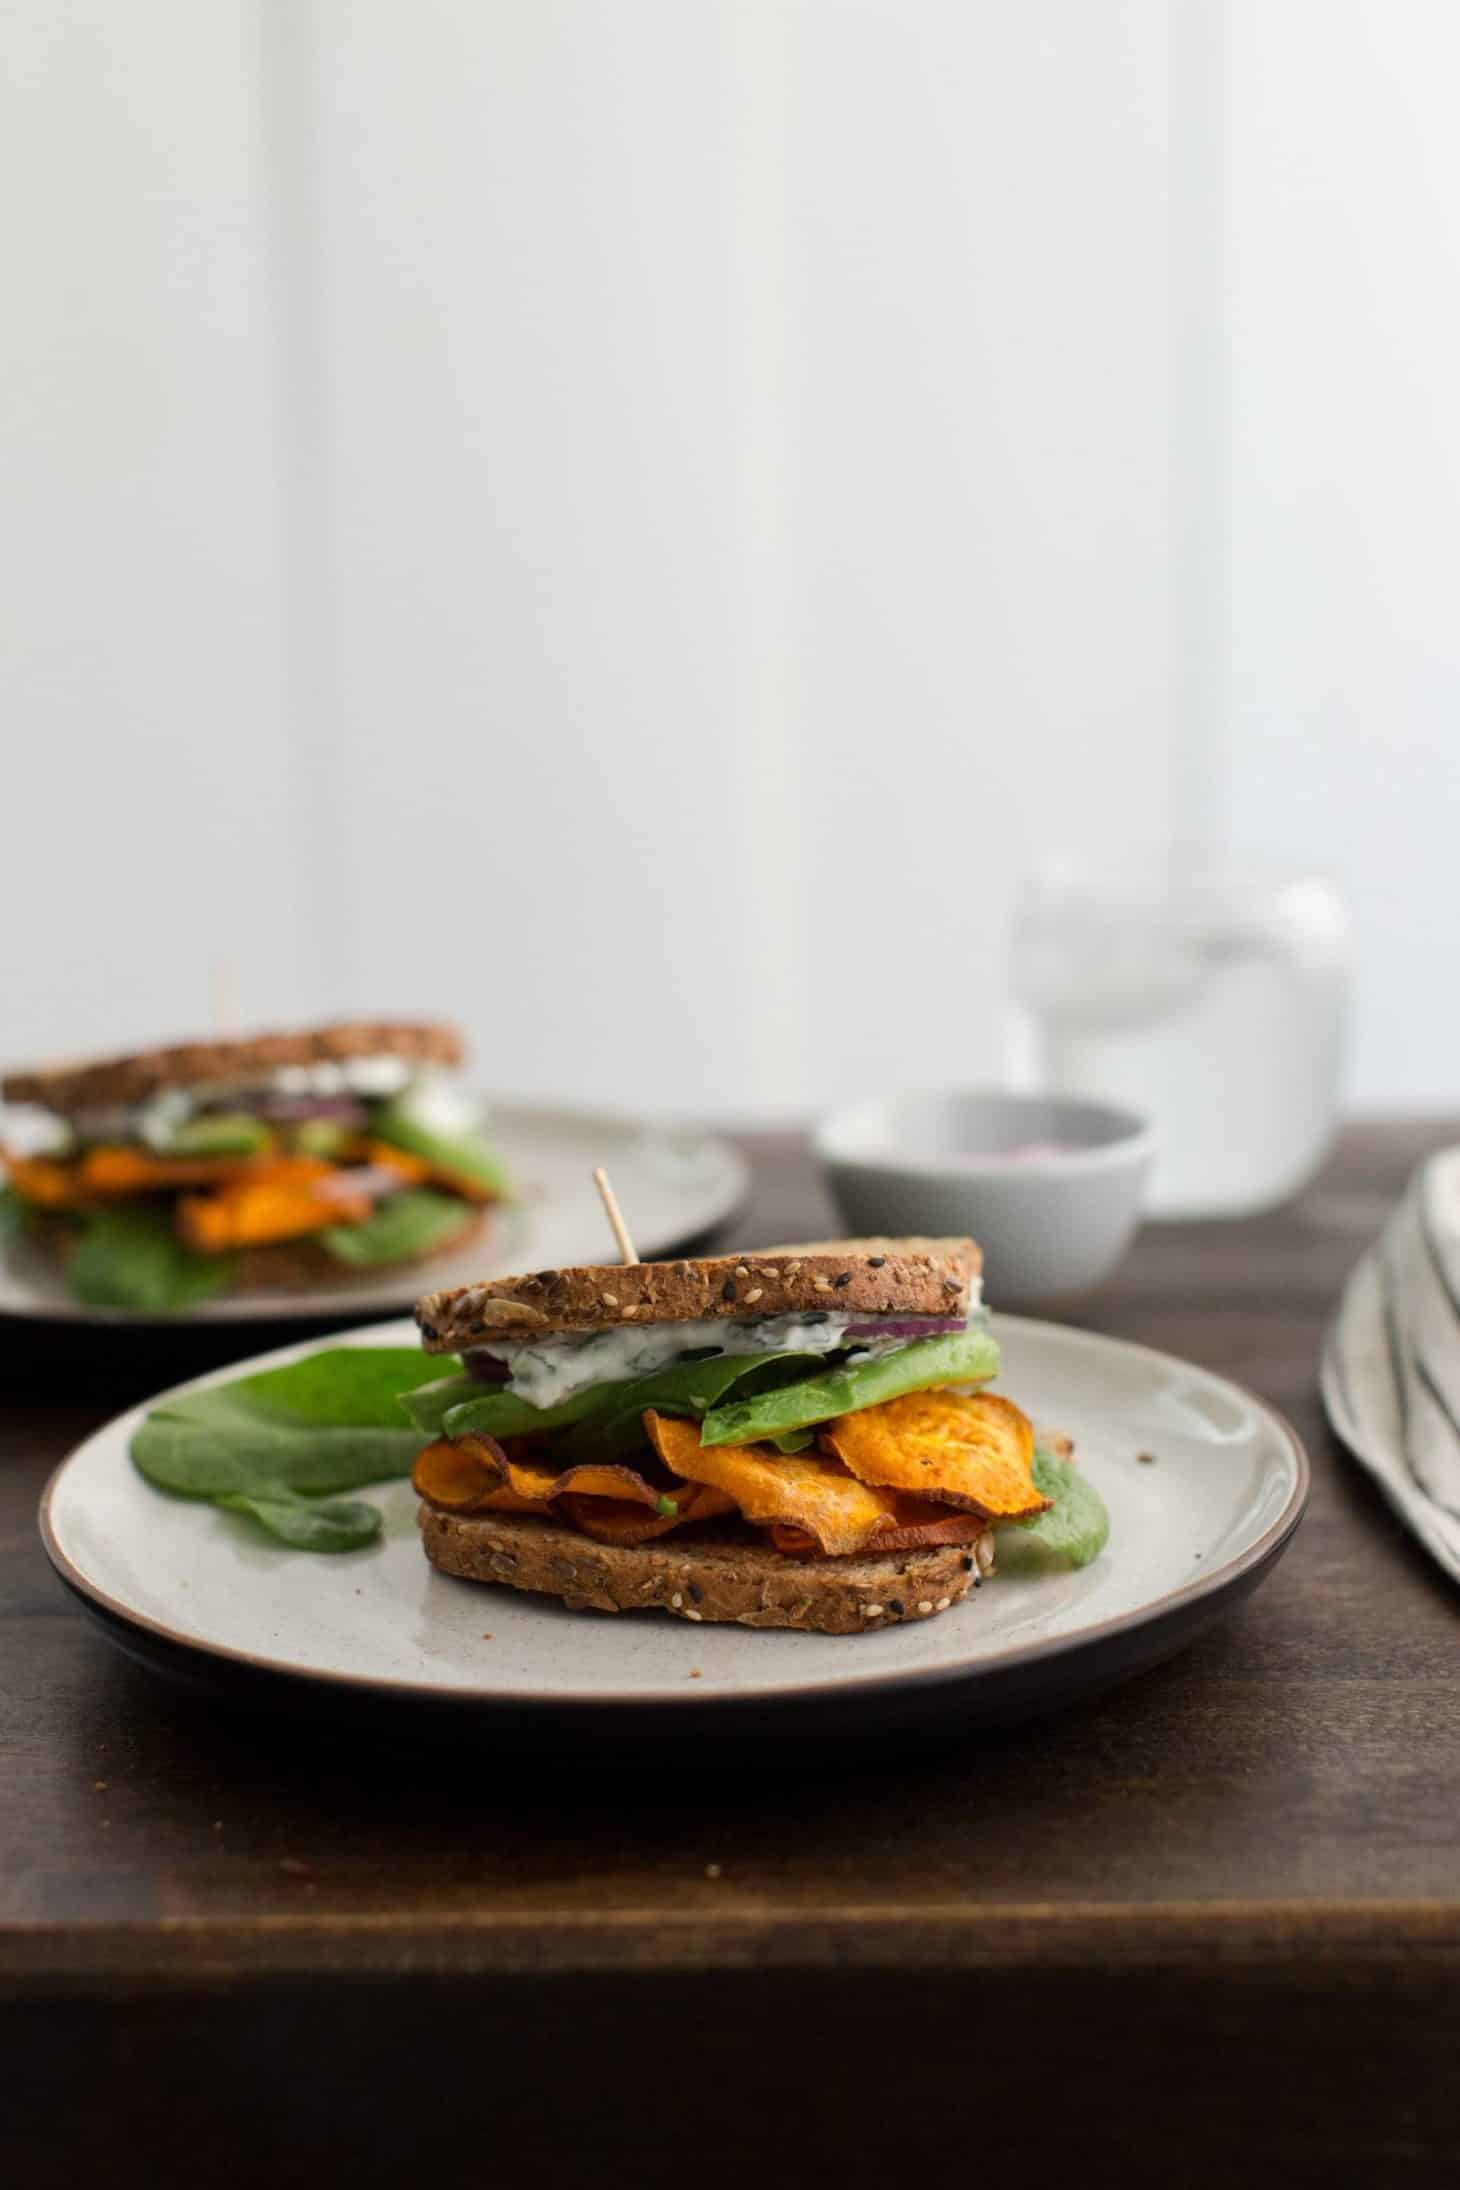 Chili Roasted Sweet Potato Sandwich